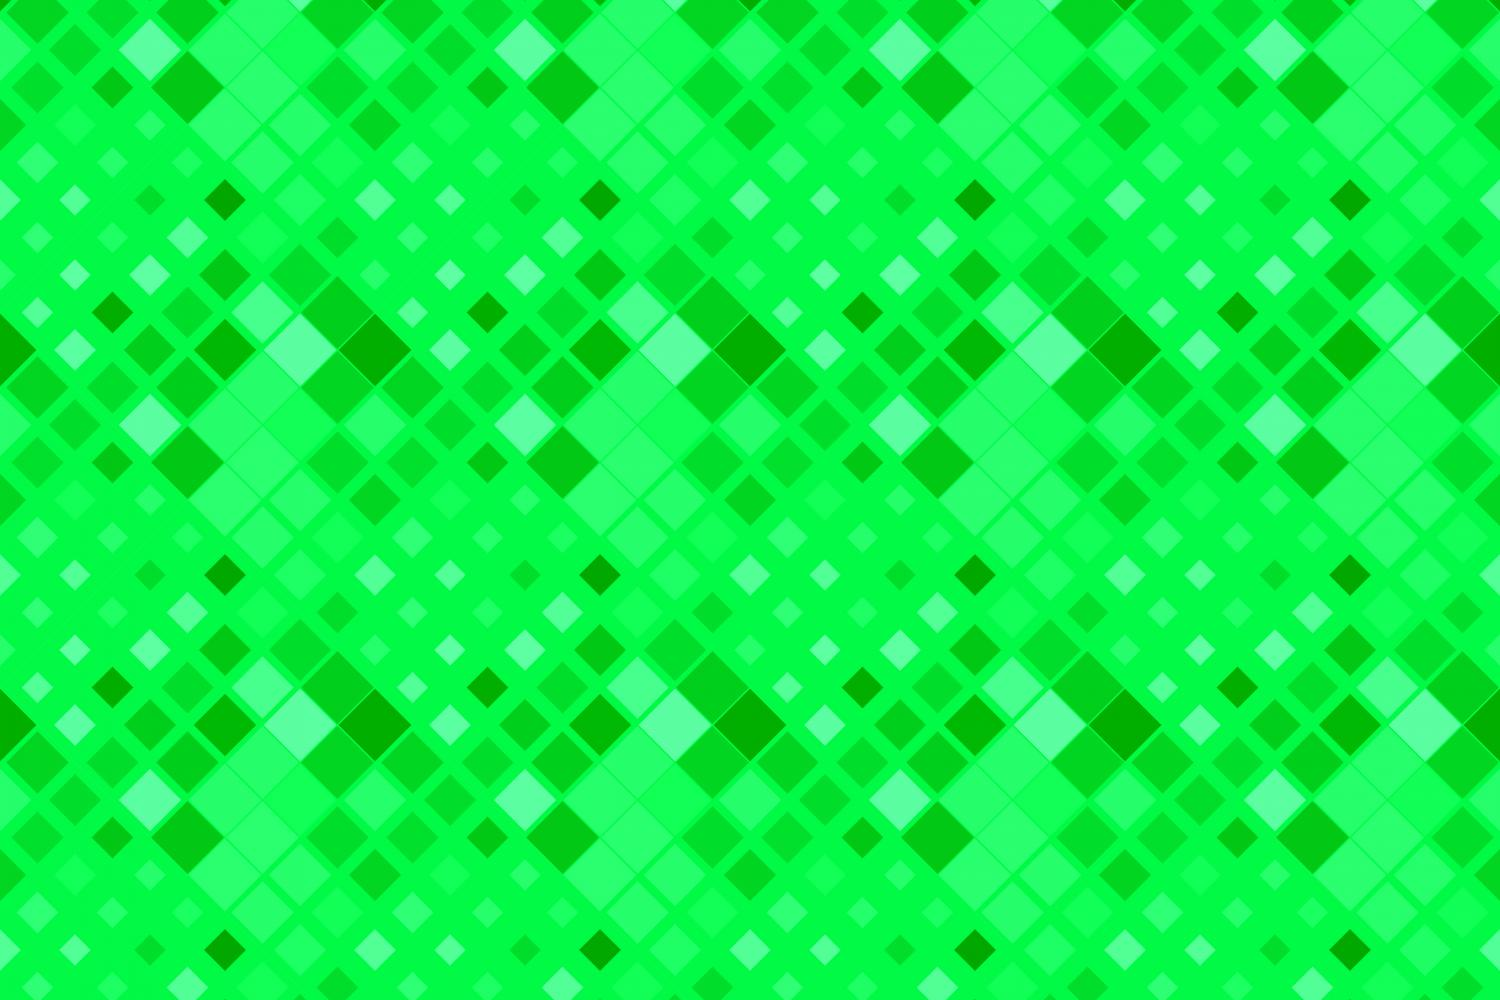 24 Seamless Green Square Patterns example image 24